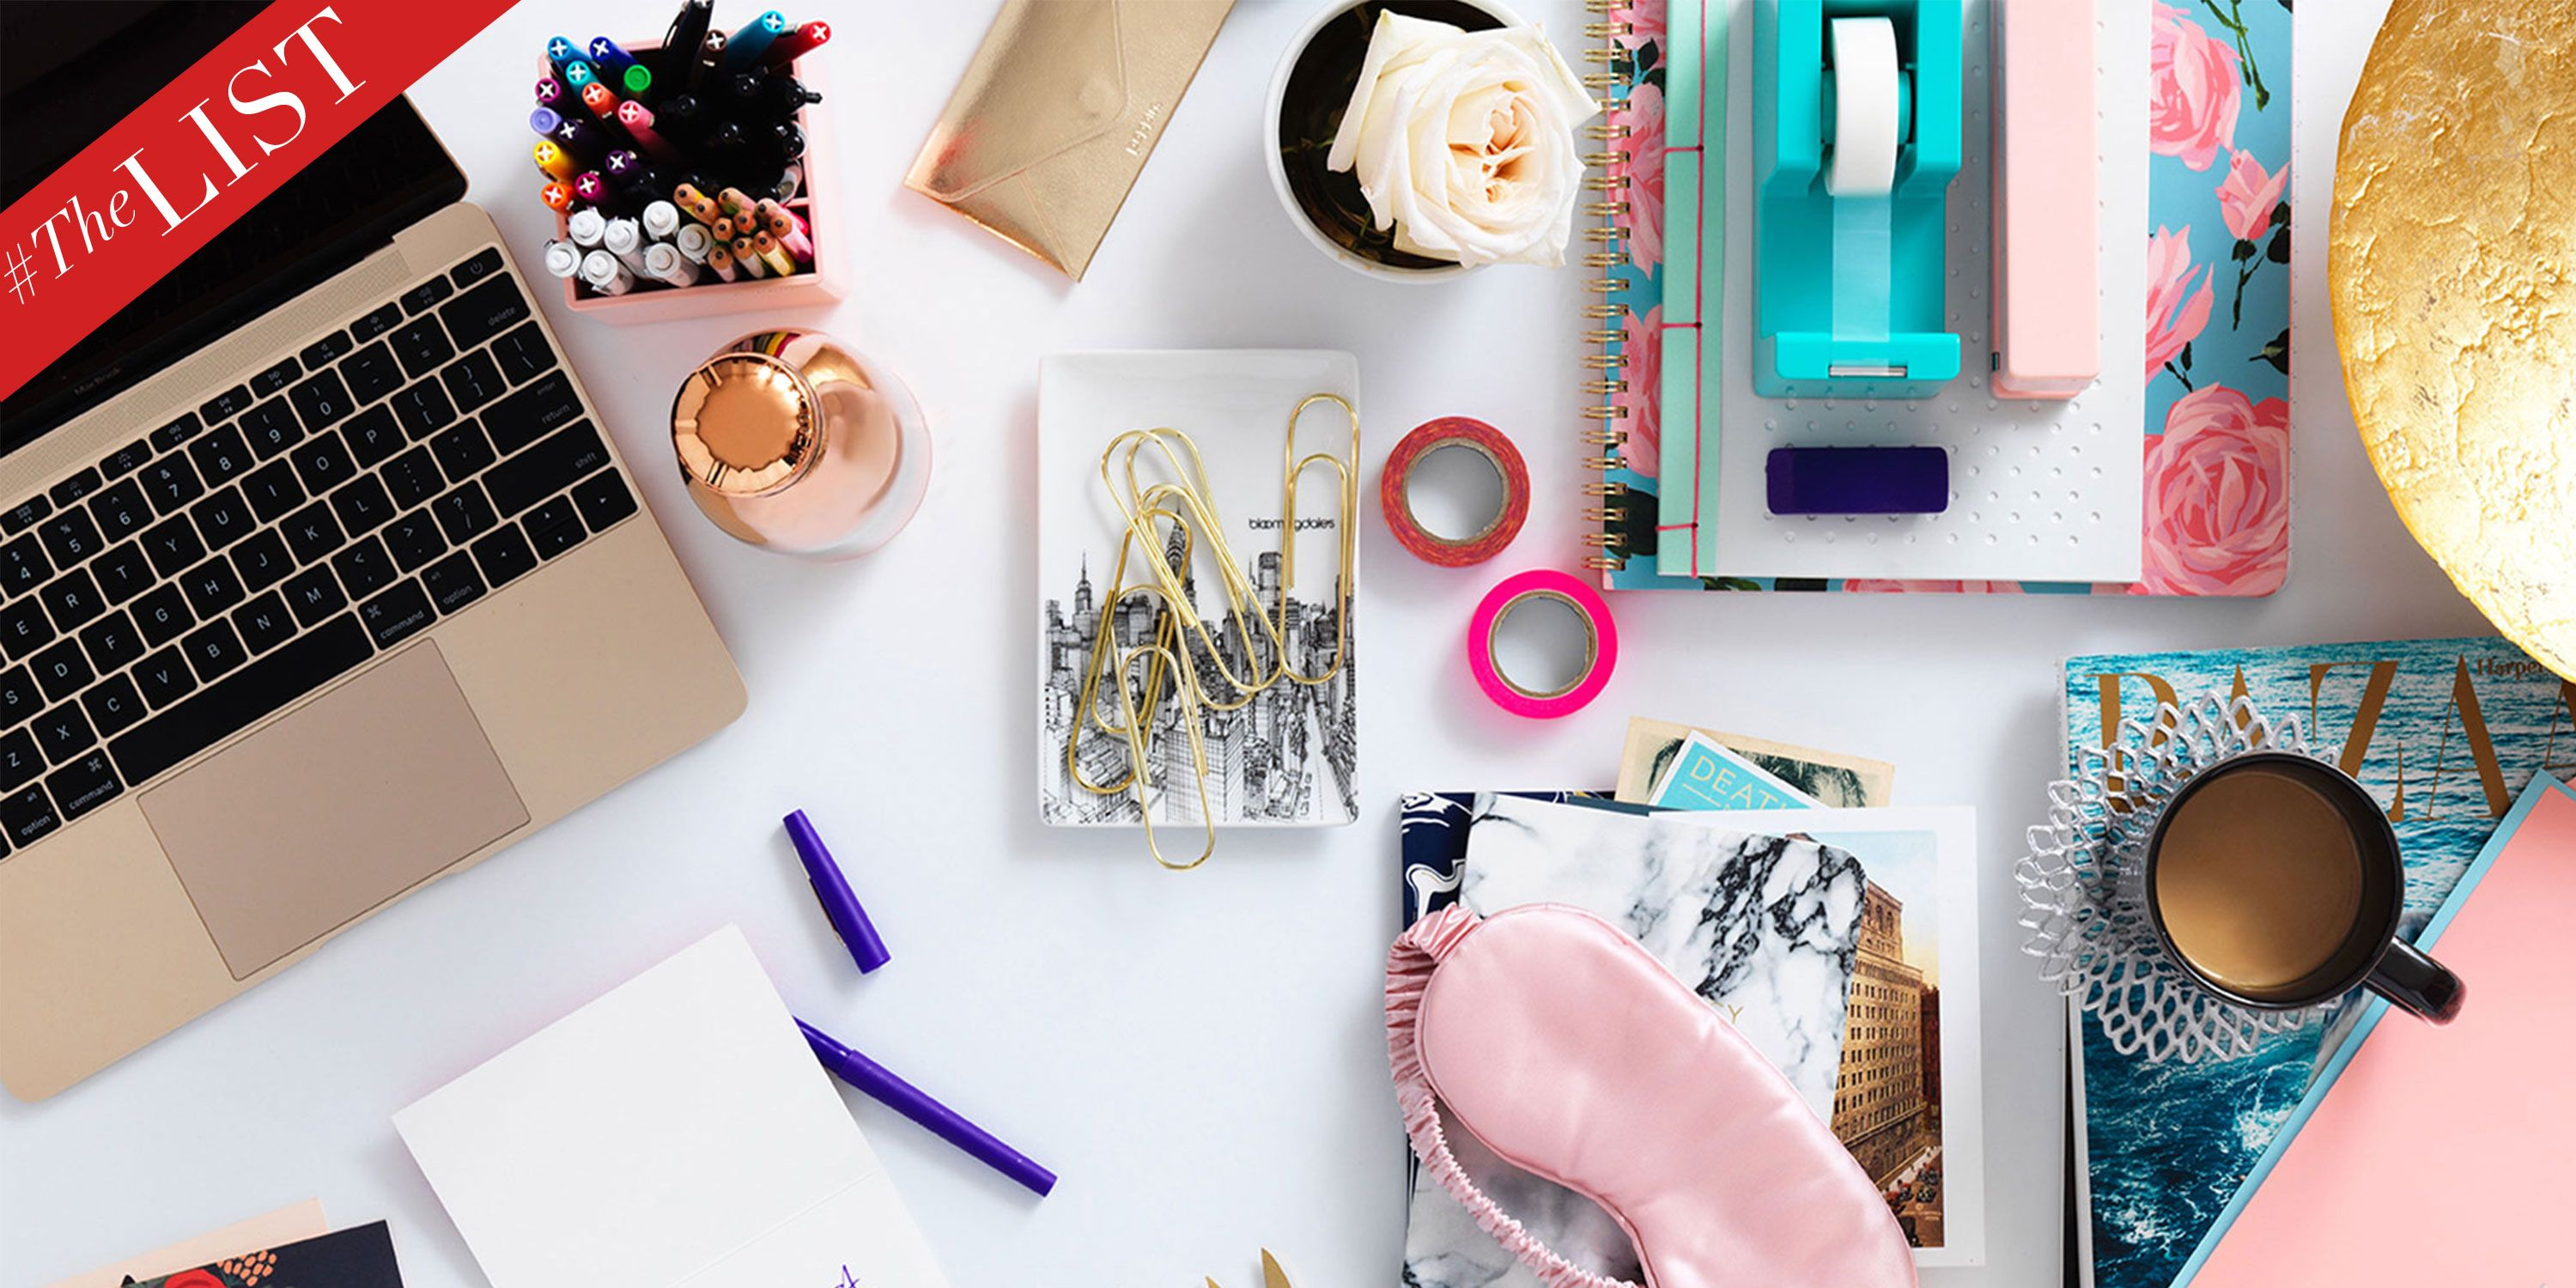 TheLIST: How to Style Your Dream Office